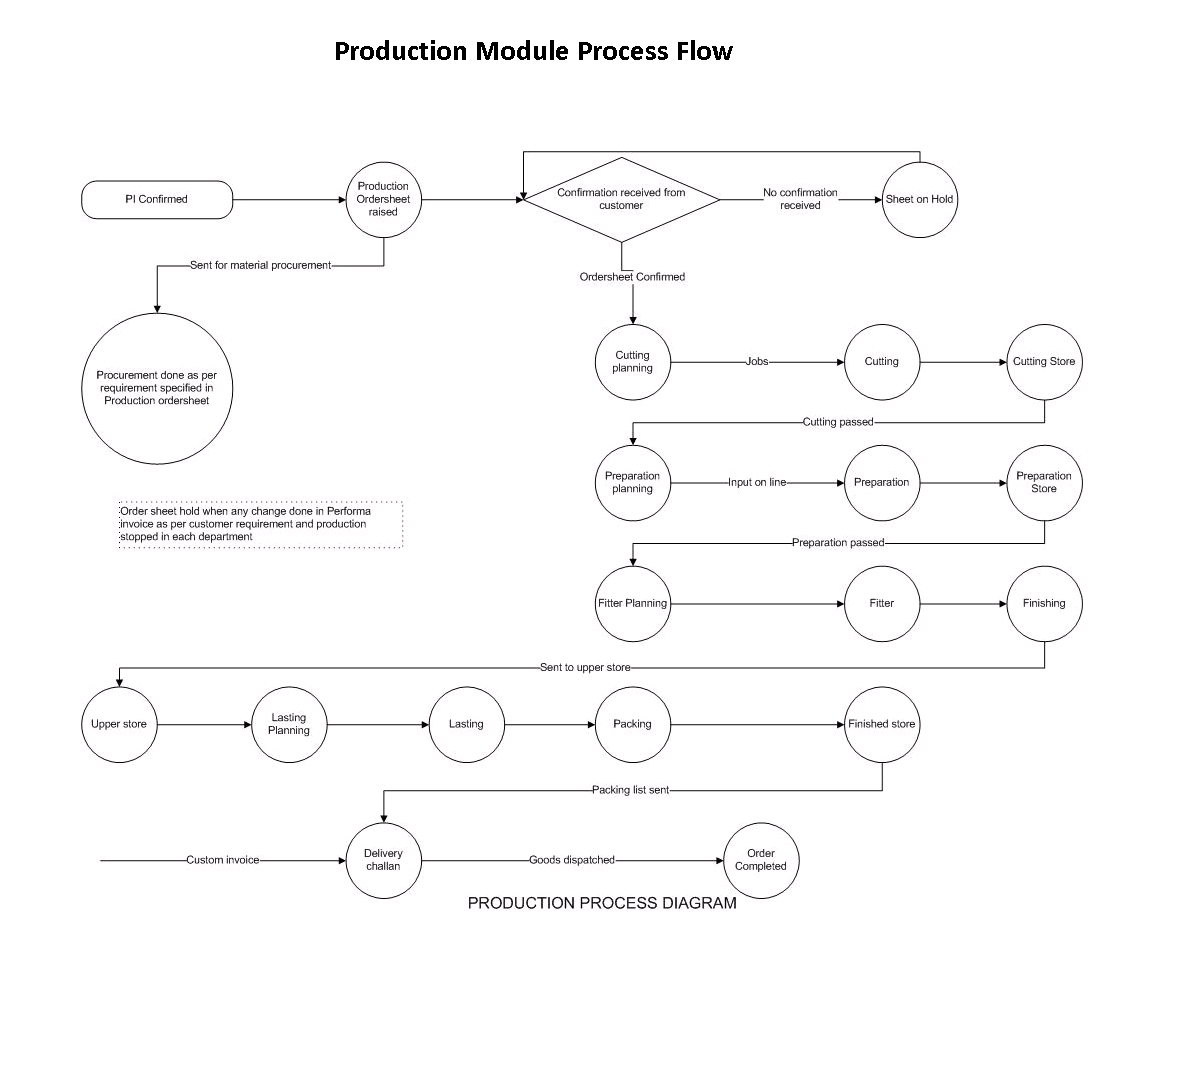 PLANNING & PRODUCTION PROCESS FLOW